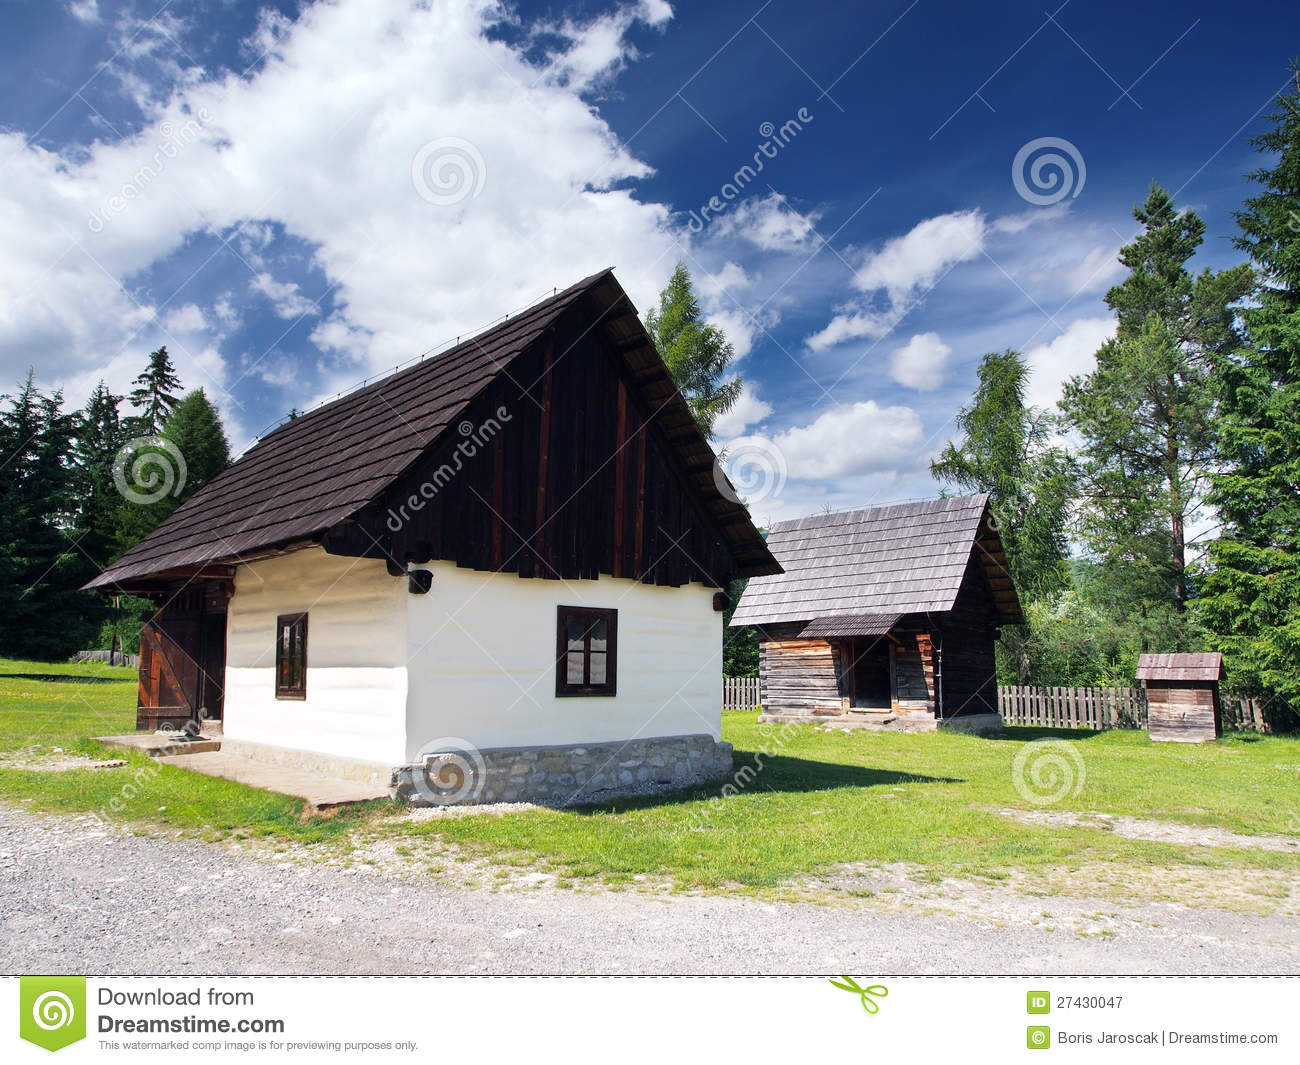 Rare wooden folk houses in Pribylina